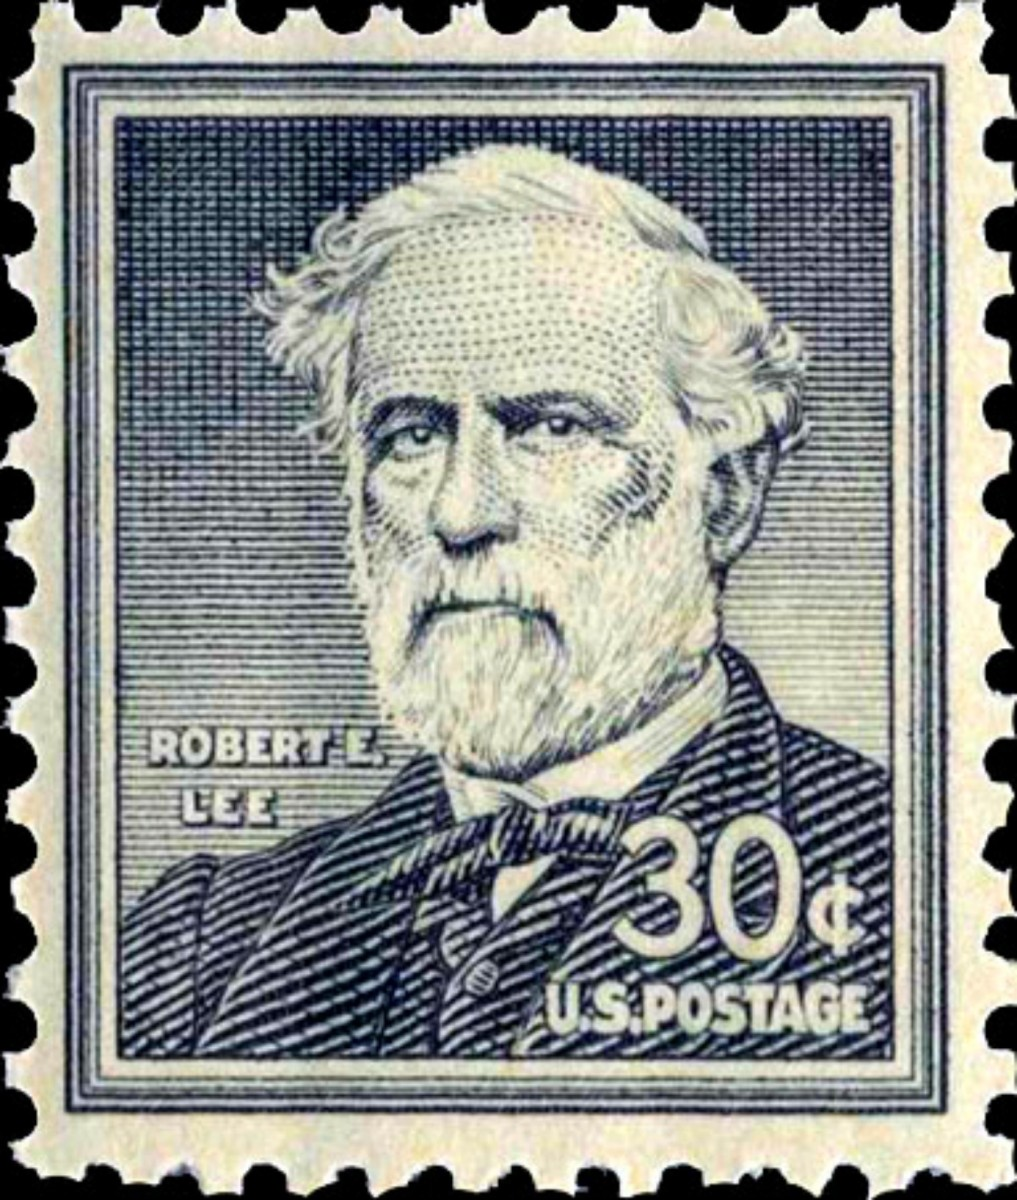 U.S. postage stamp, issued in 1954, honoring Civil War Confederate General Robert E. Lee. The Liberty Series, Issued to replace the 1938 Presidential series, this patriotic set of stamps honors guardians of freedom throughout U.S. history.